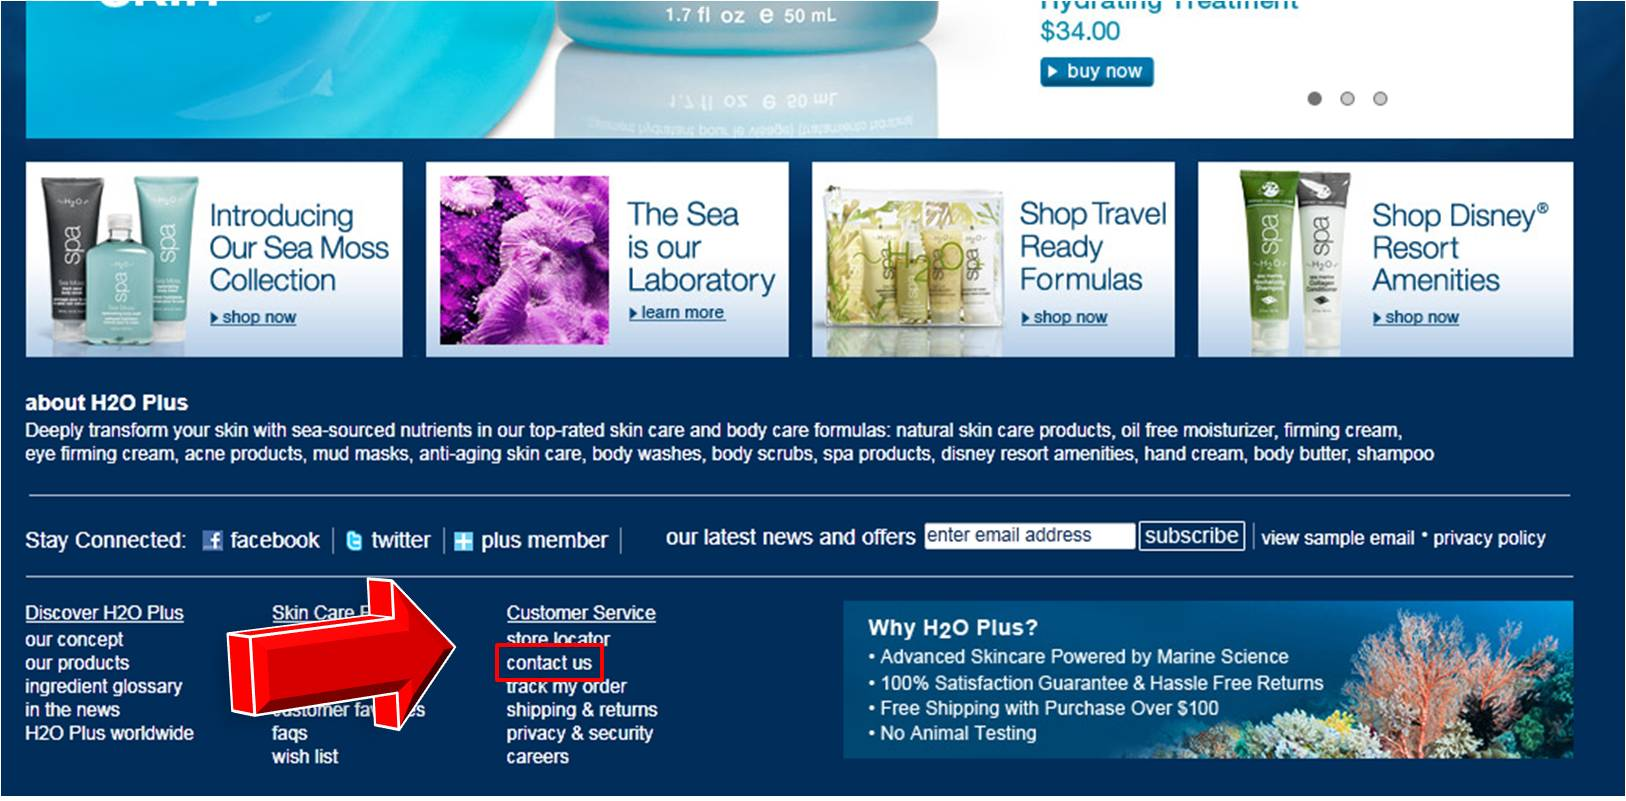 H2O Plus Coupons All Active H2O Plus Coupon Codes & Promo Codes - Up To 20% off in December Check out the H2O Plus online store and discover a large number of skincare, bath and body products as well as cosmetics must-haves.